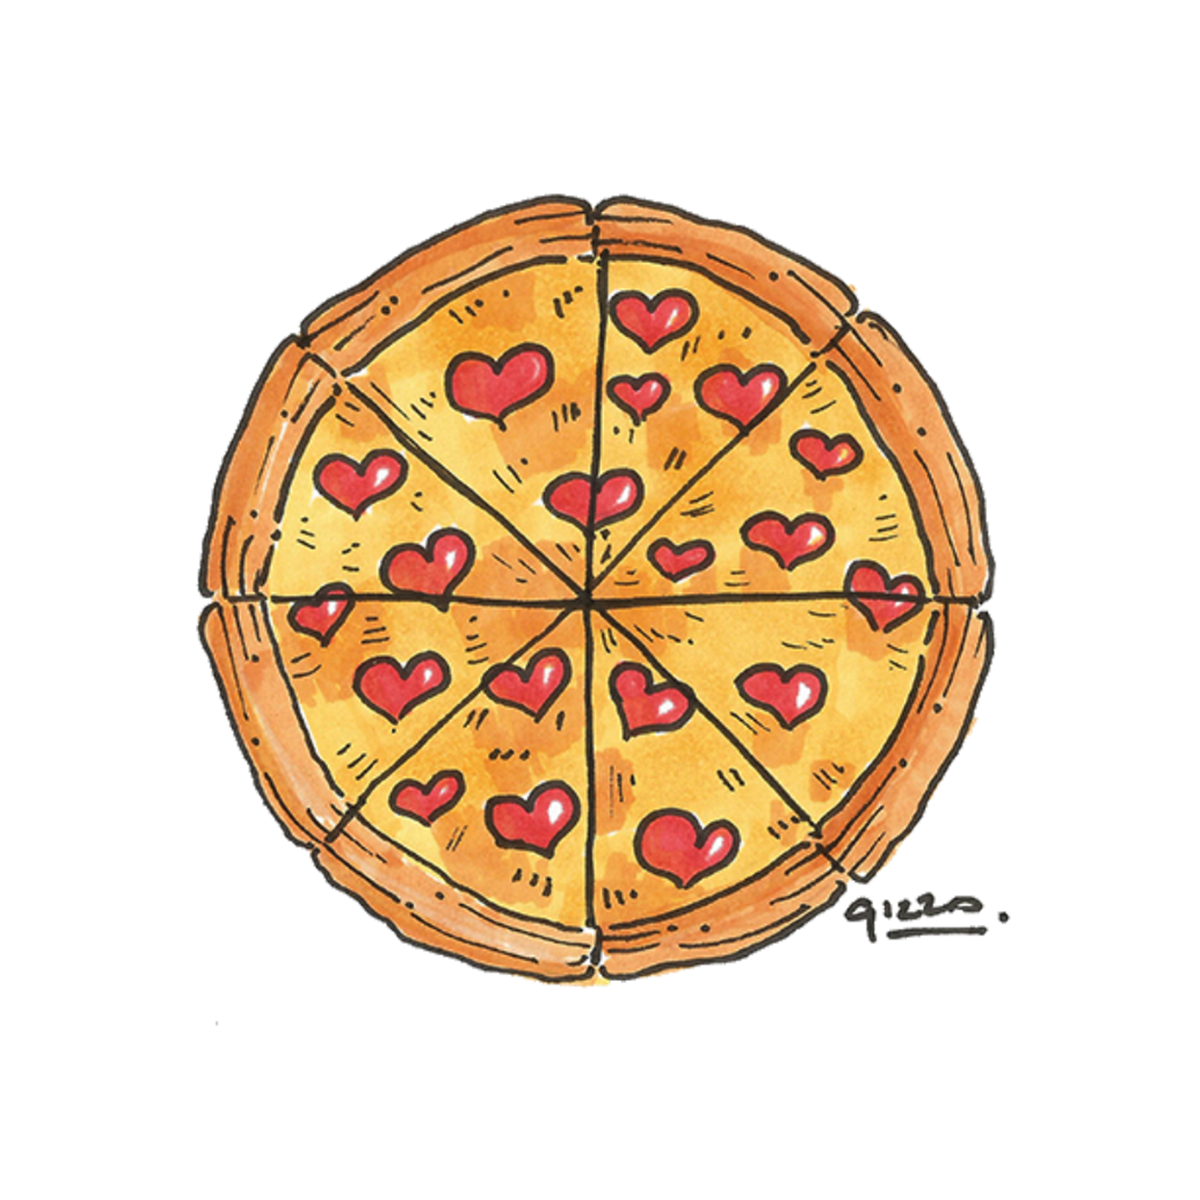 Chalk pizza png. Love illustration for valentine